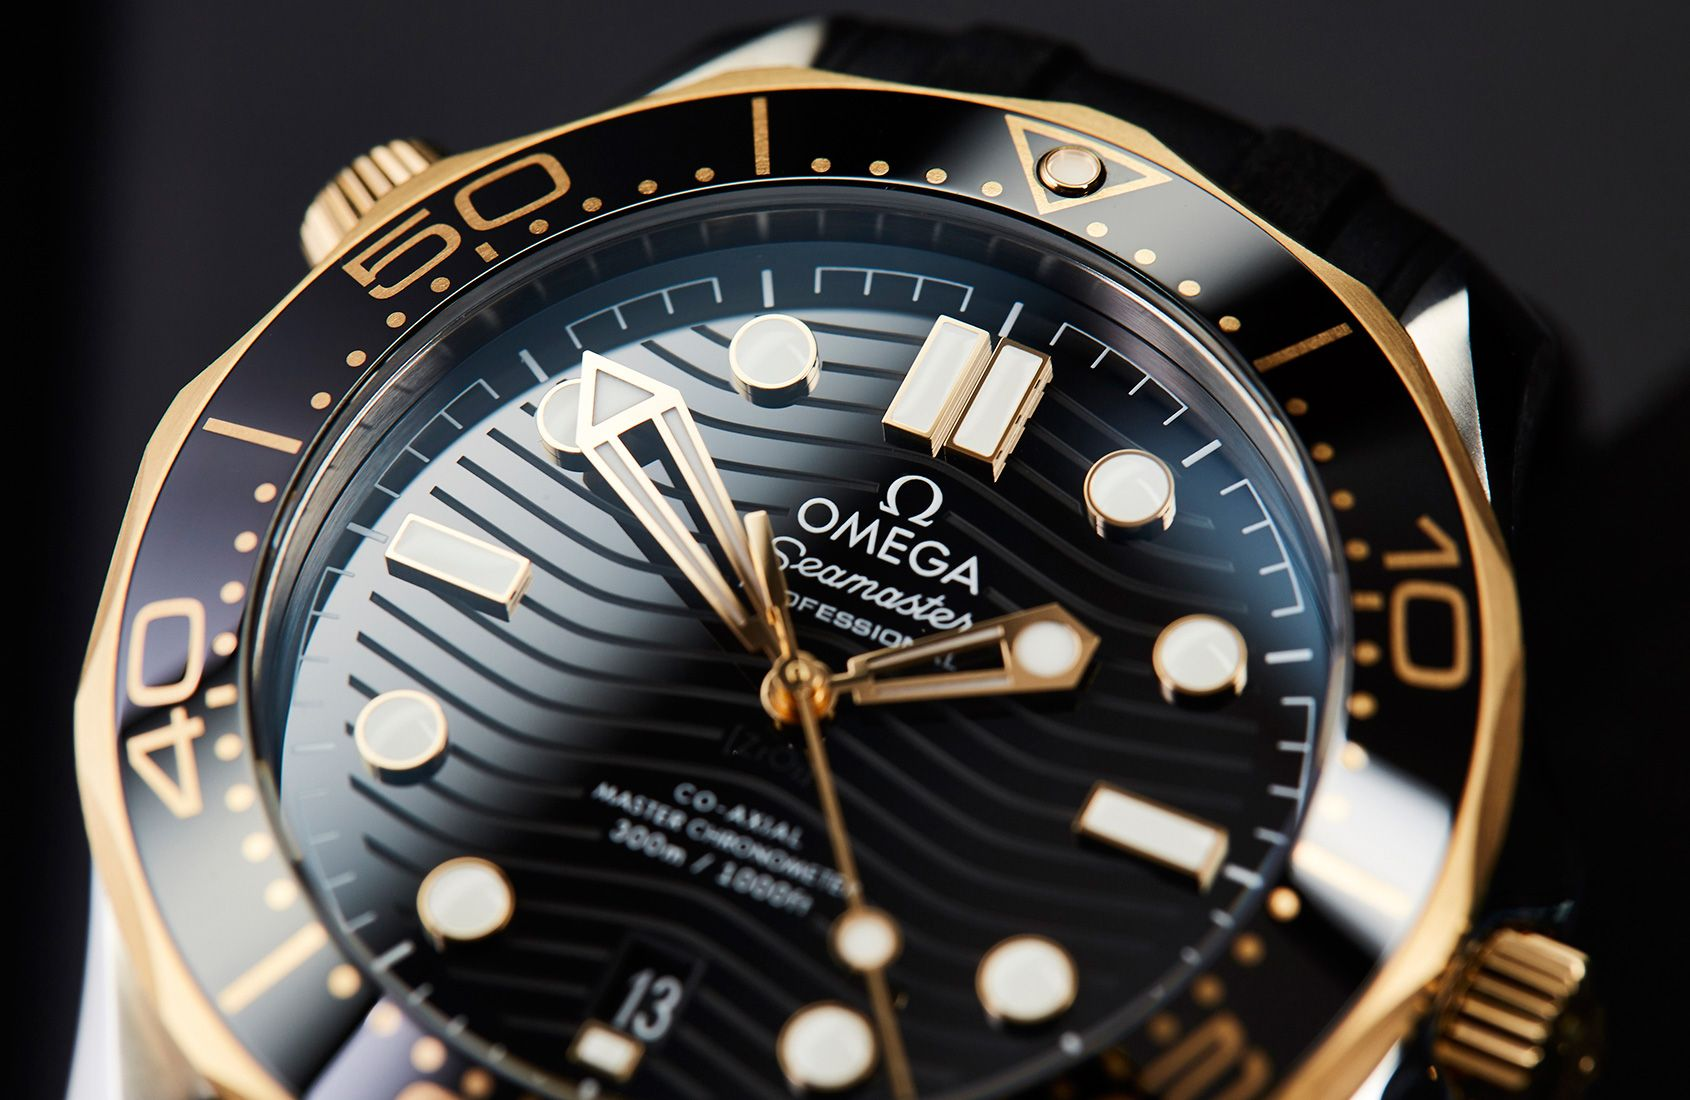 Https Timeandtidewatches Com Wp Content Uploads 2018 09 Omega Seamaster Diver 300m Two Tone 3 Jpg Omega Omega Seamaster Omega Seamaster Chronograph